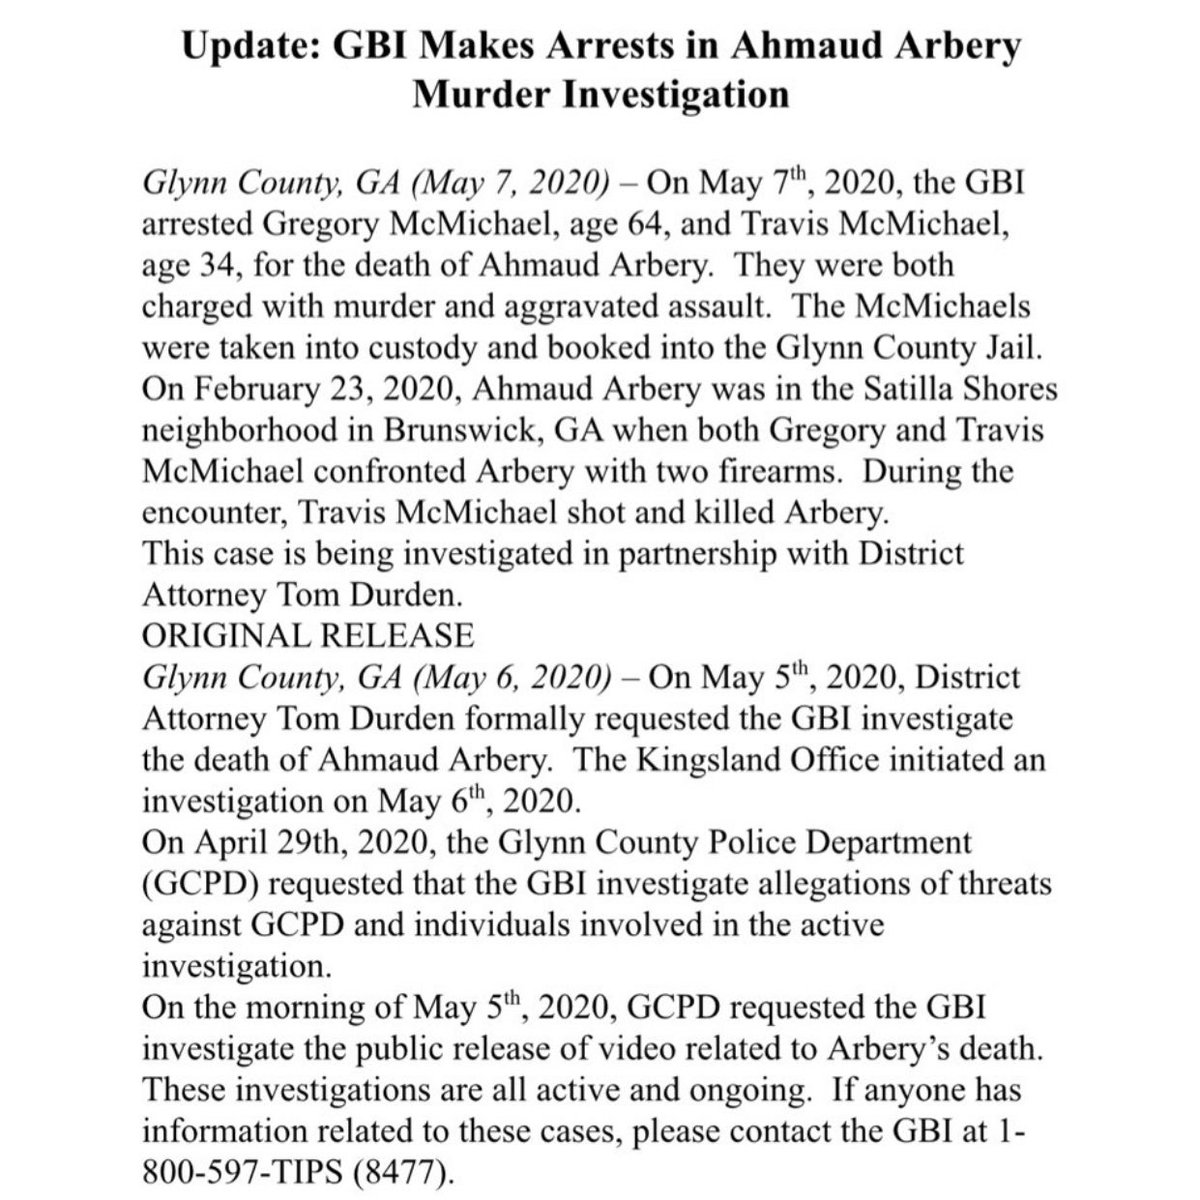 Philip Defranco On Twitter Big Update To Todays Final Story Gregory Mcmichael And Travis Mcmichael Have Been Arrested And Charged With The Murder Of Ahmaud Arbery Https T Co Qflb1ozk2j Последние твиты от philip defranco (@klimax730). philip defranco on twitter big update